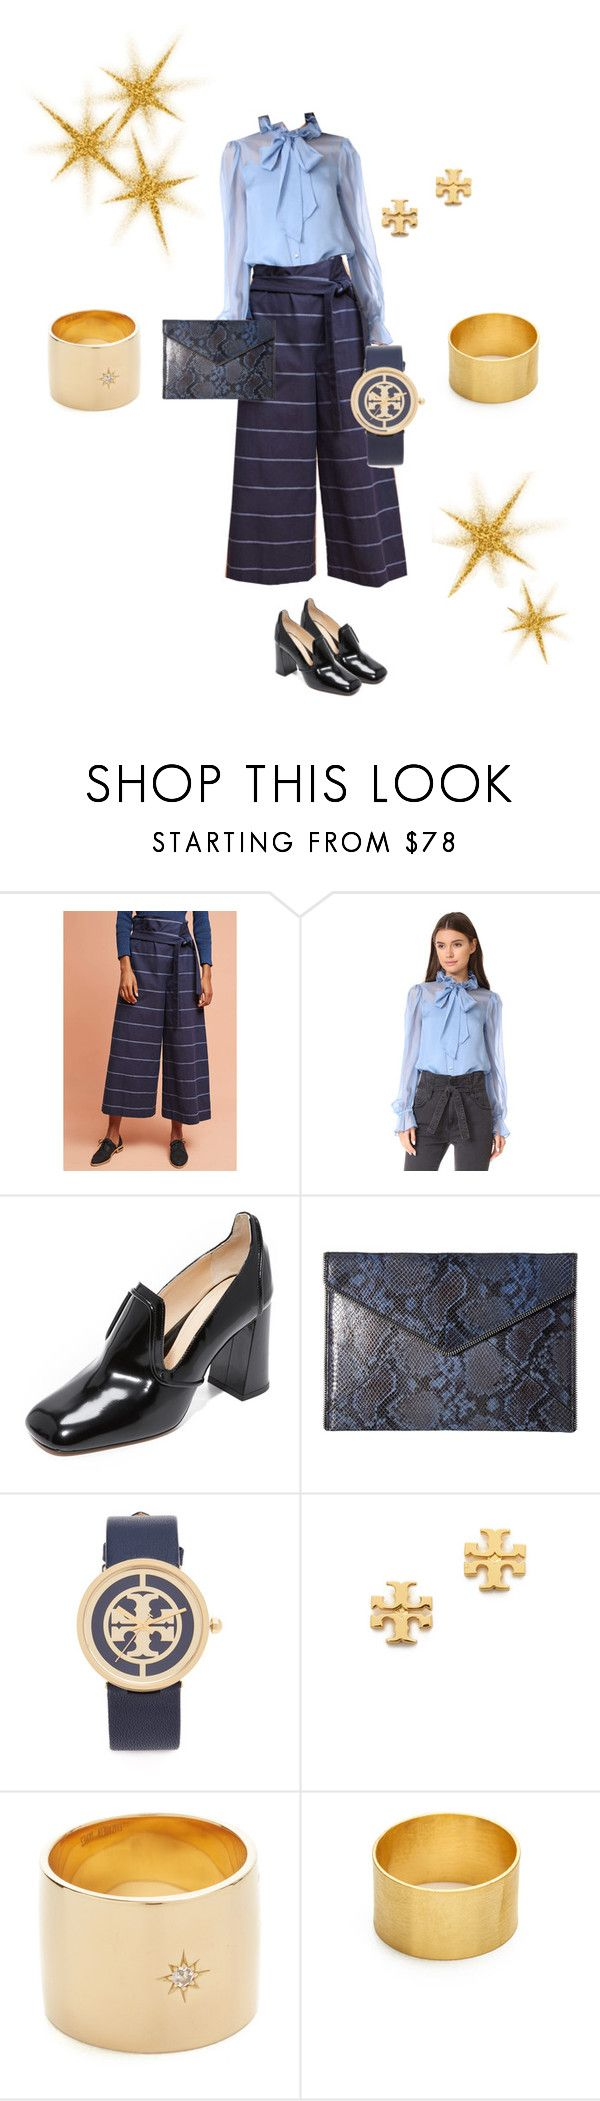 """""""Sasha"""" by lannlpz ❤ liked on Polyvore featuring Mara Hoffman, Temperley London, Marion Parke, Rebecca Minkoff, Tory Burch, Elizabeth and James and Maya Magal"""